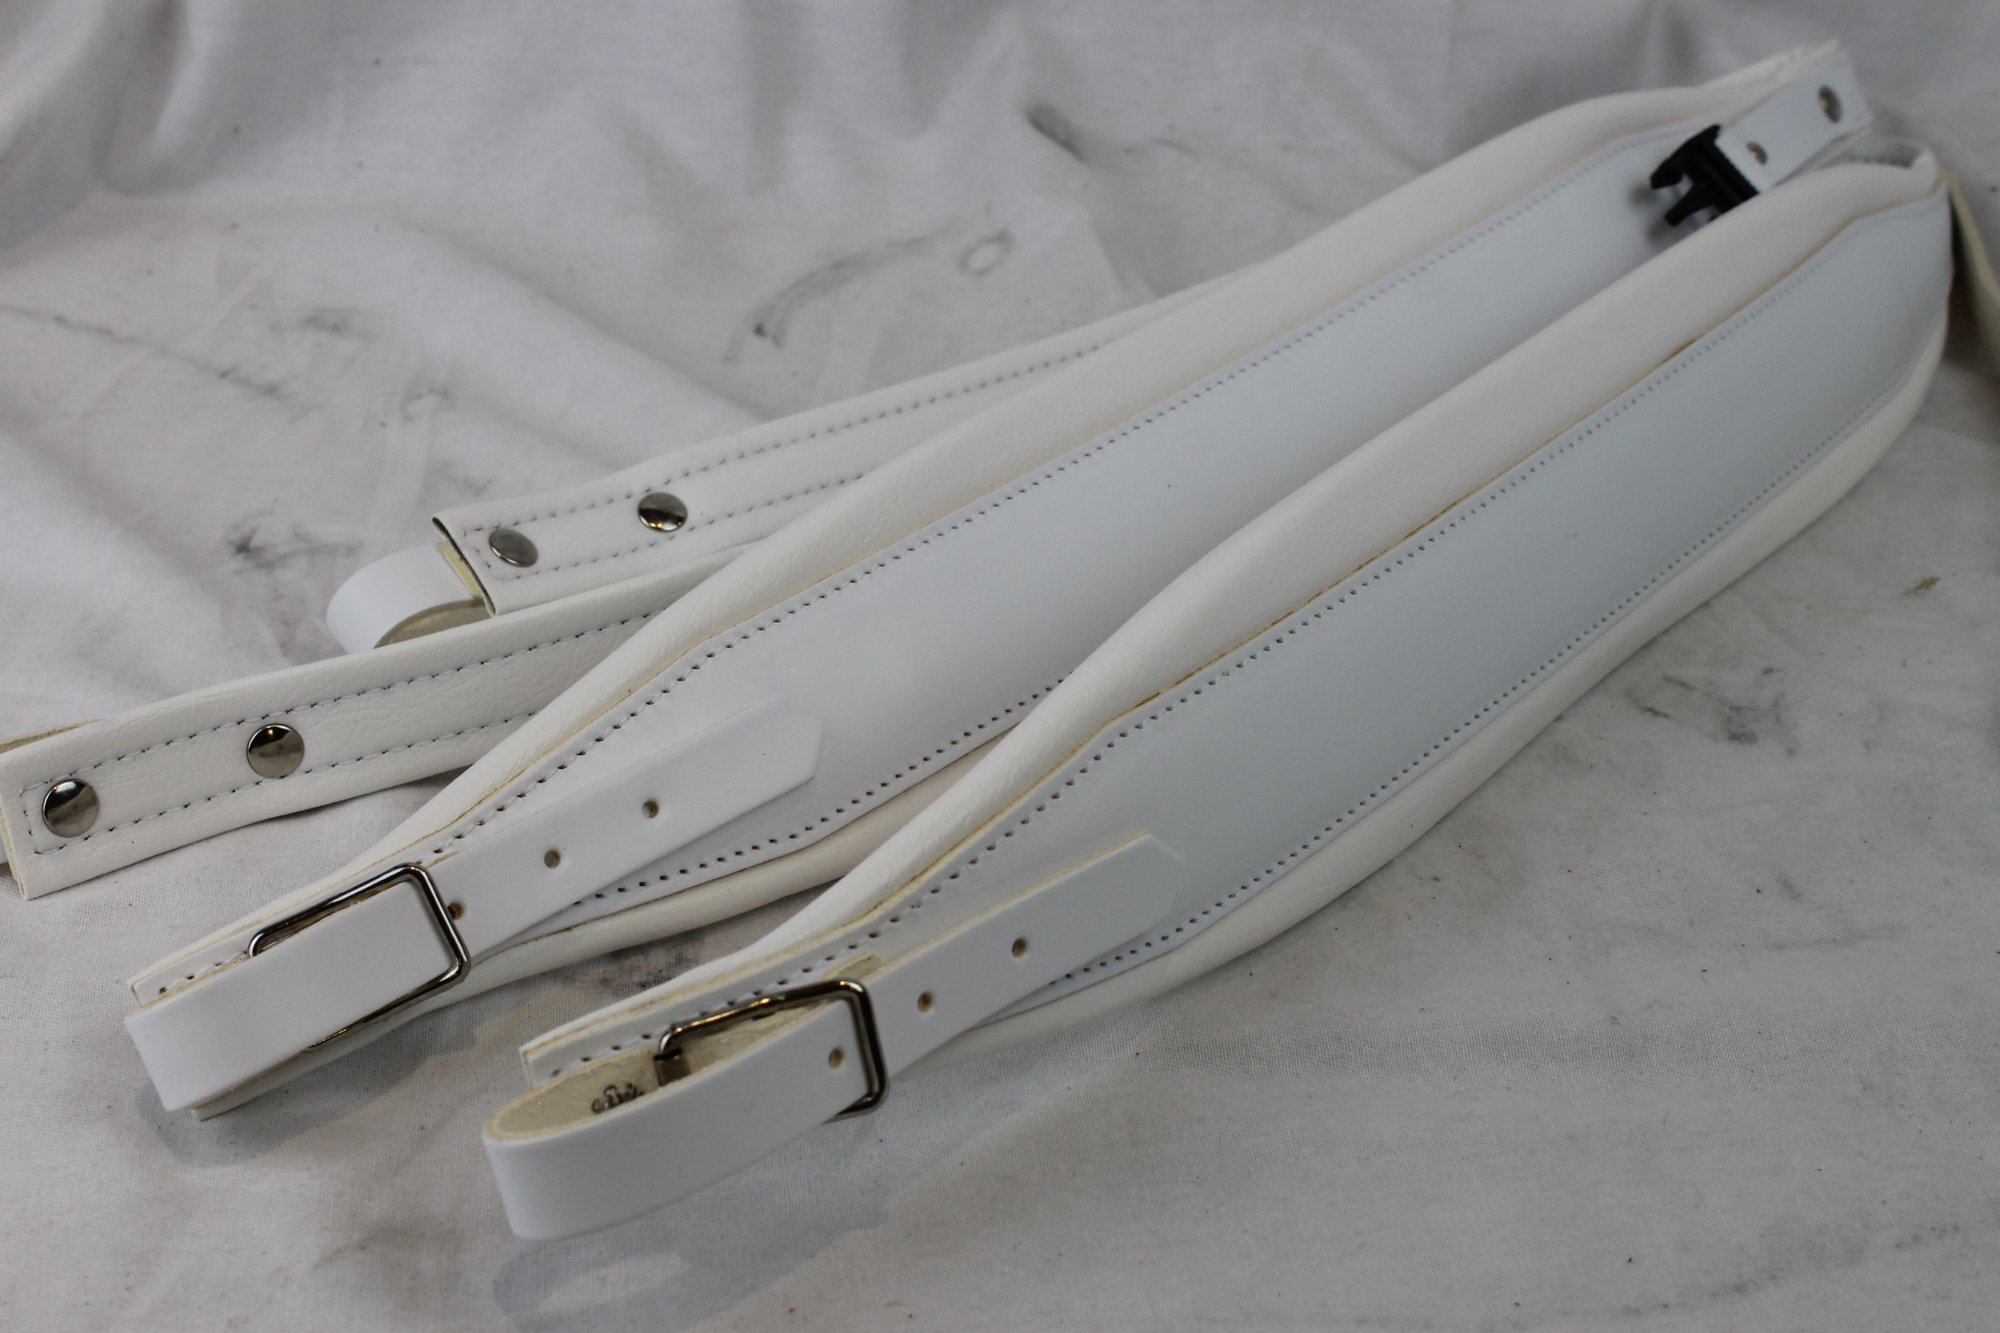 NEW White Leather Fuselli Accordion Shoulder Straps With Back Straps Width (8cm / 3.1 inch) Length (105cm-123cm / 41.3-48.4 inch)